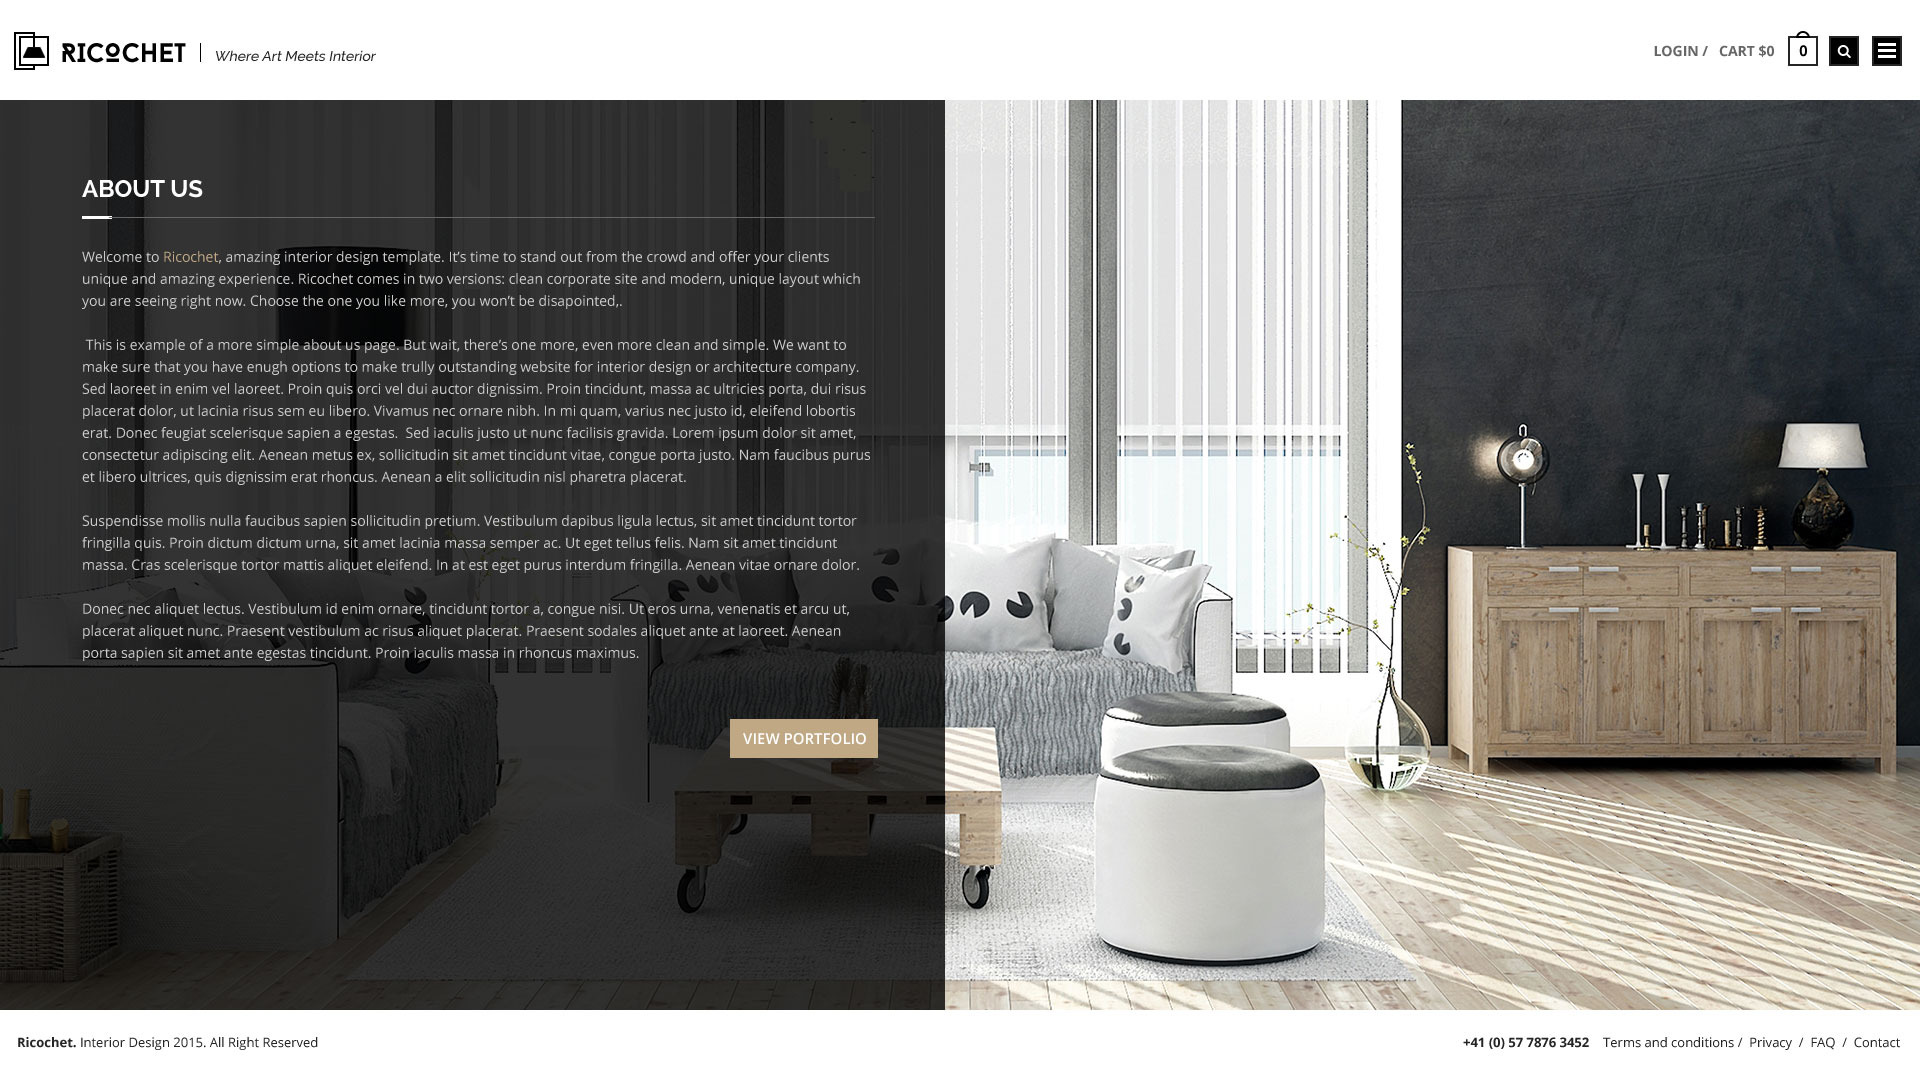 Interior Design Terms And Conditions Terms And